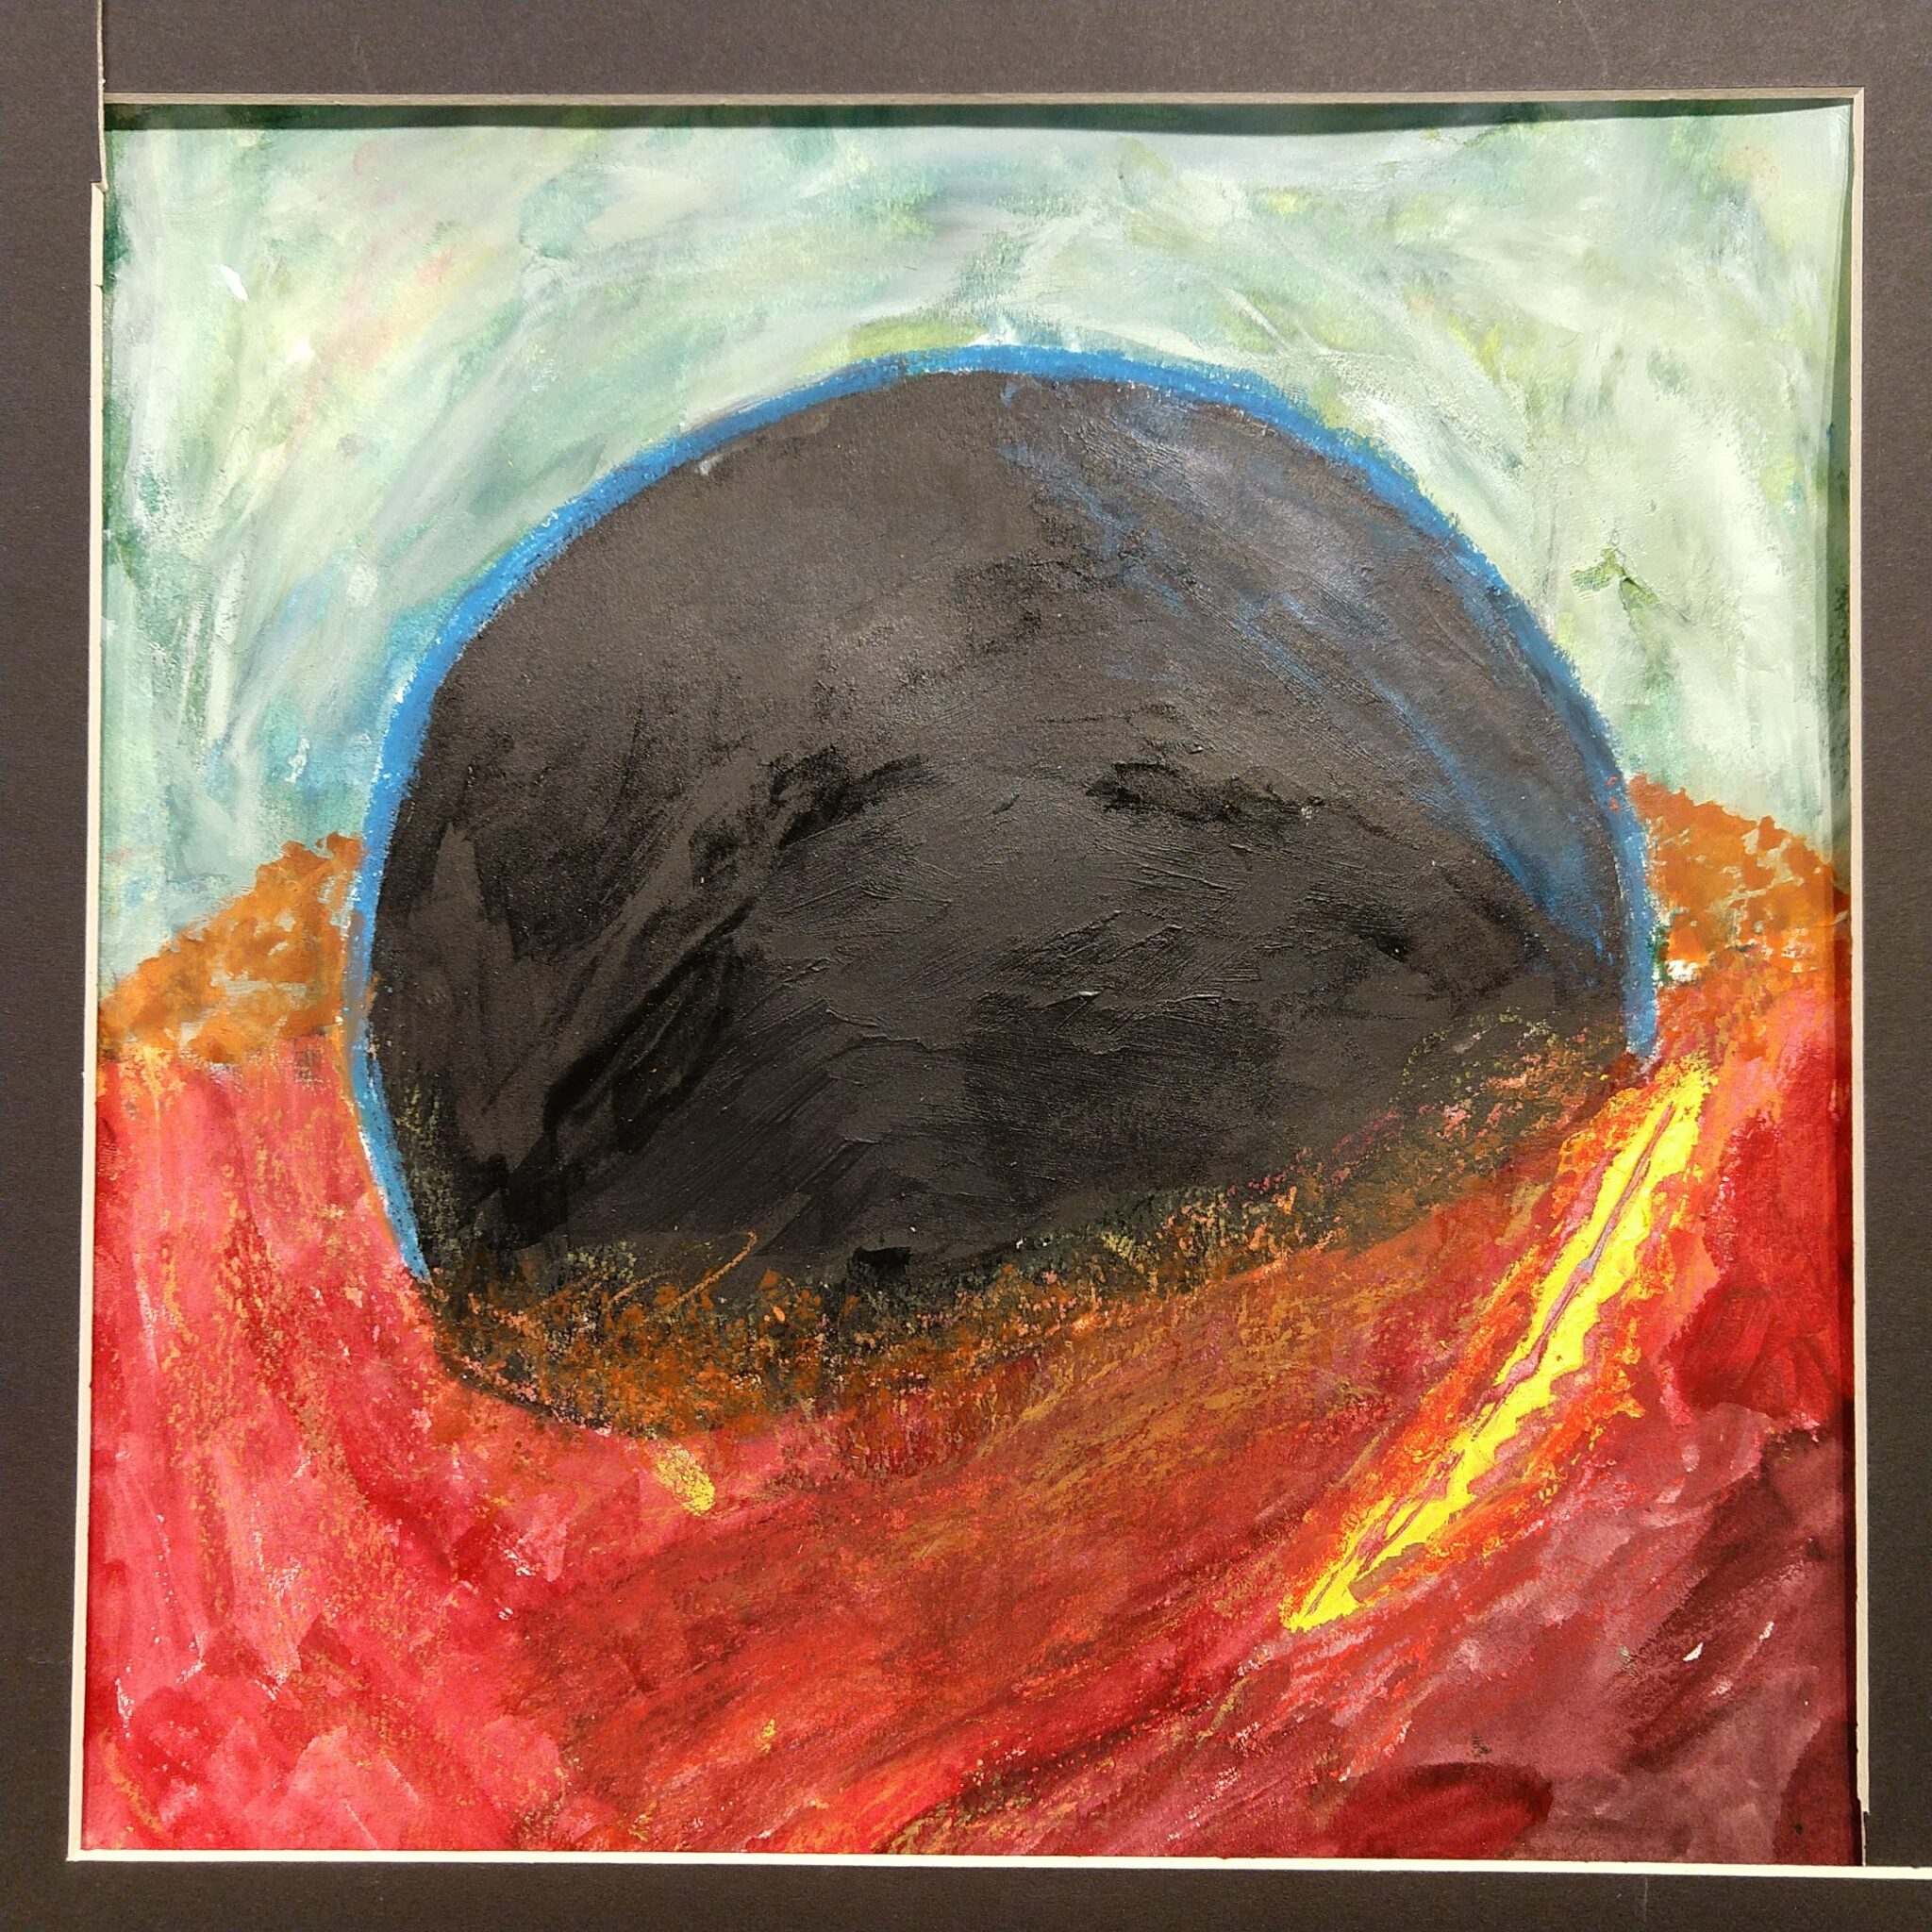 painting of a ball in bright red